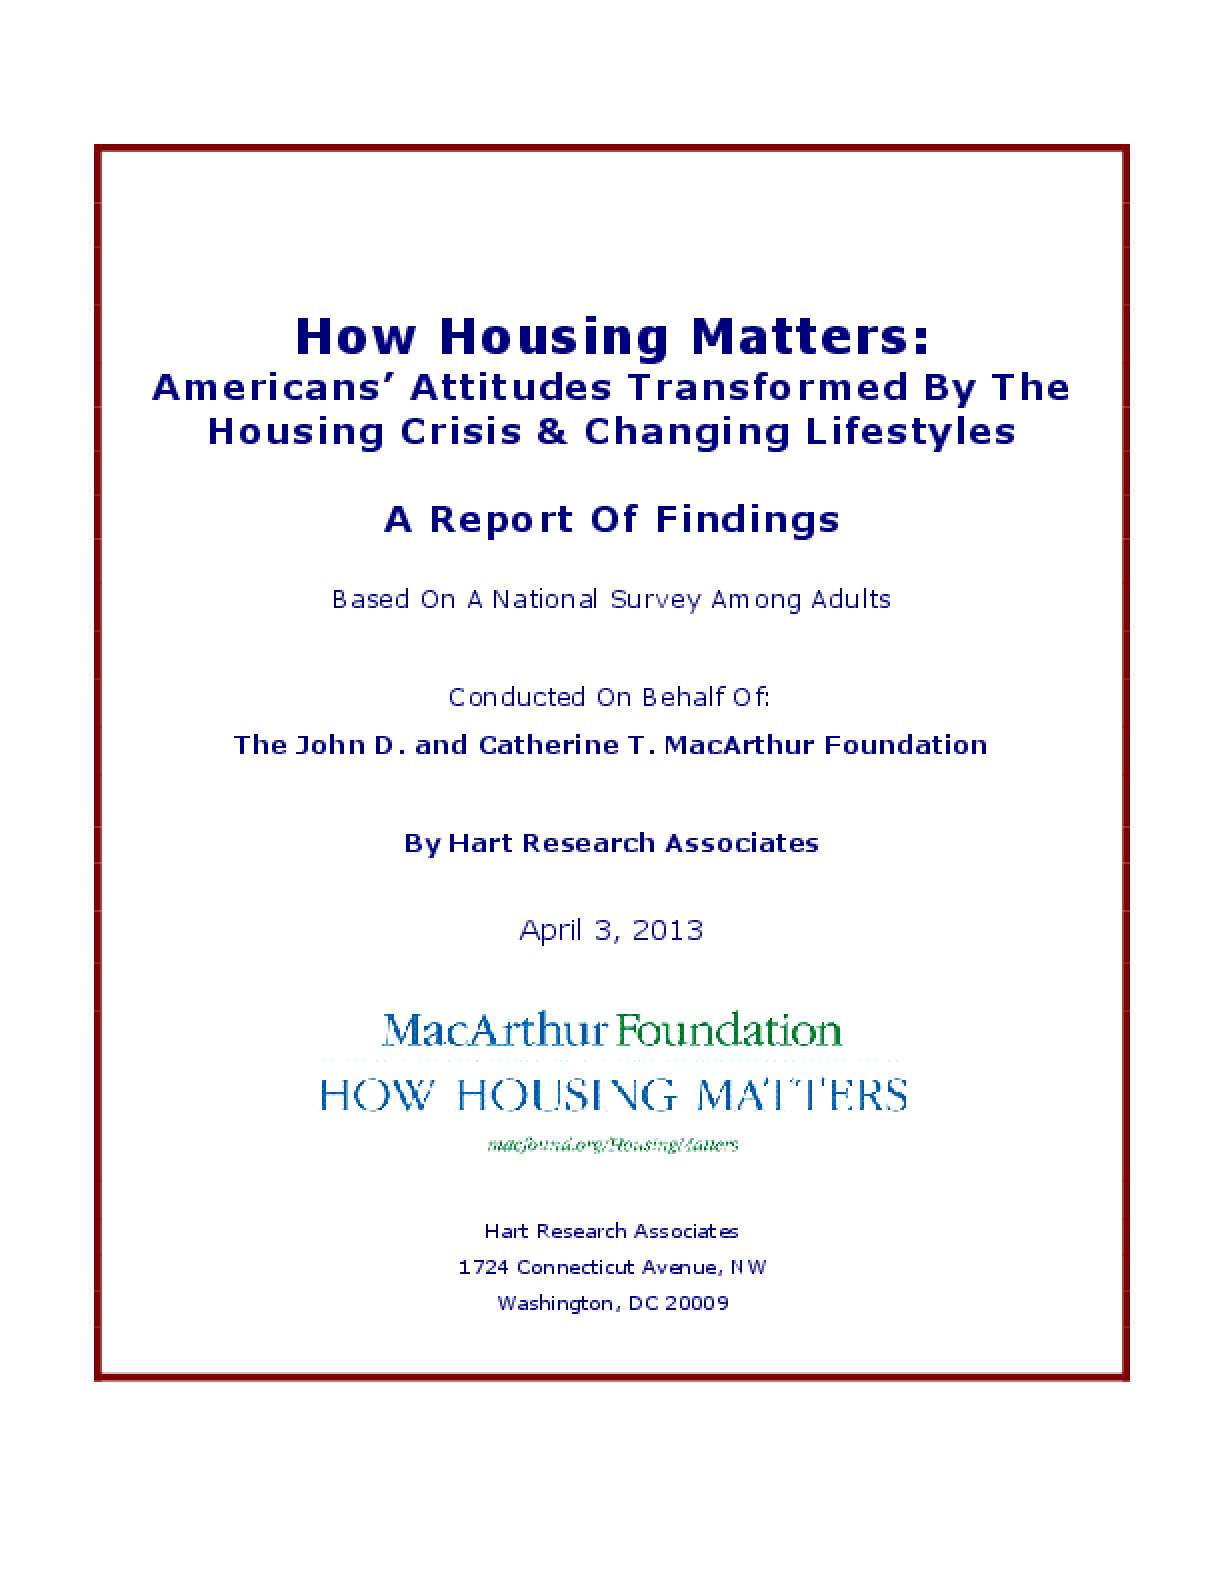 How Housing Matters: Americans' Attitudes Transformed by the Housing Crisis & Changing Lifestyles